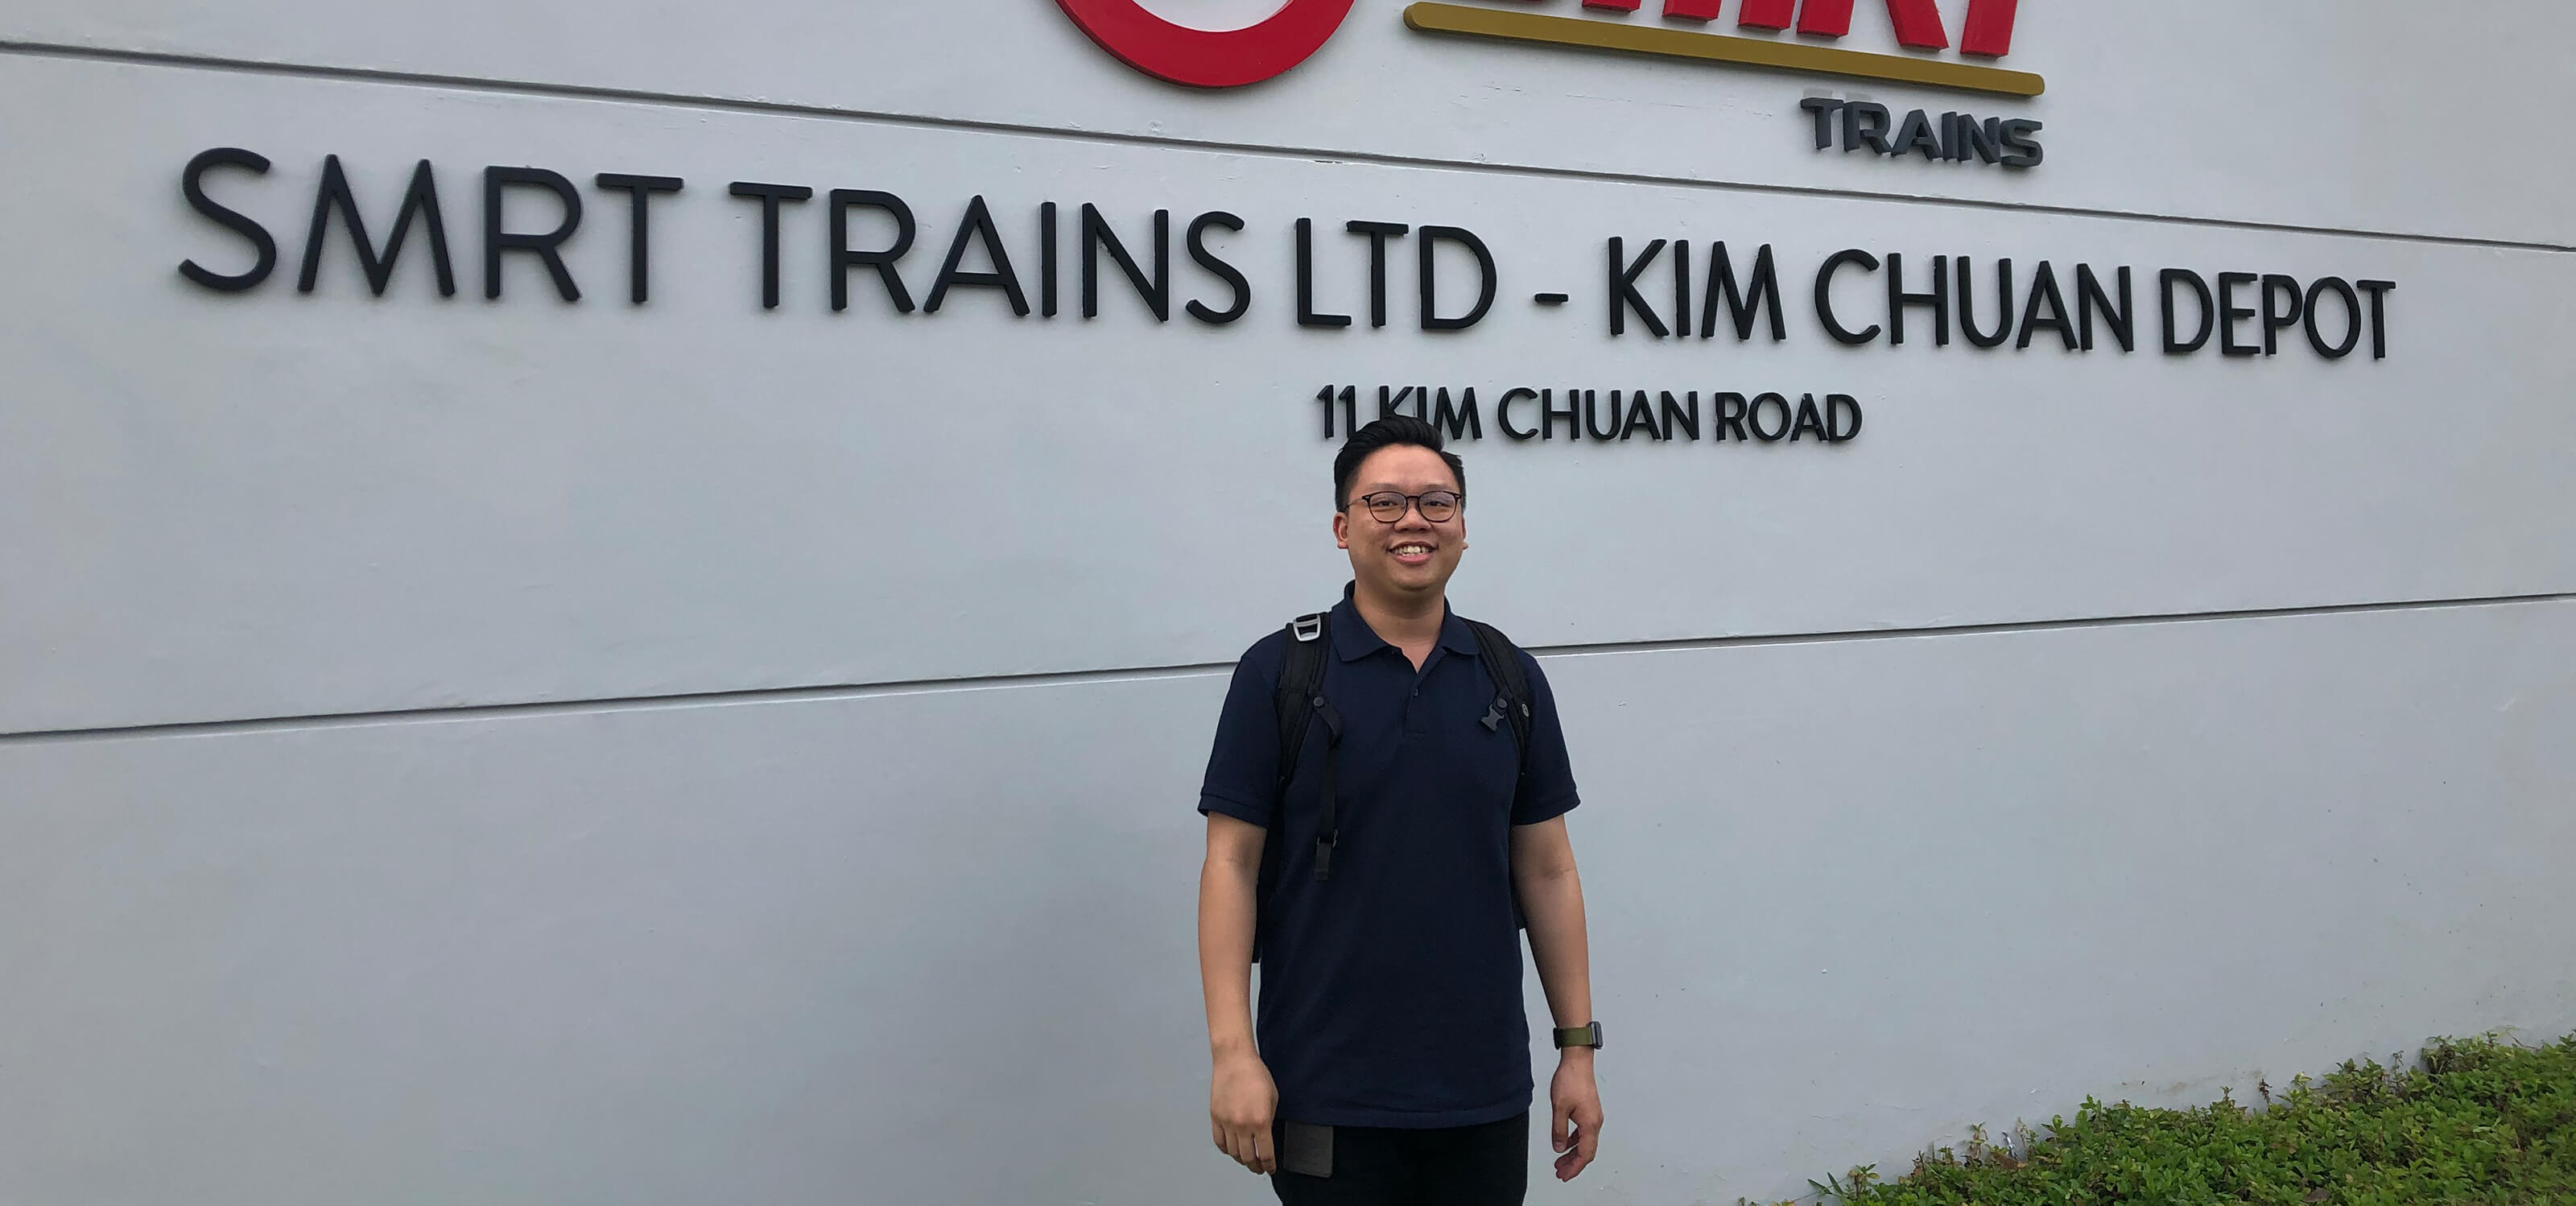 "Samuel Tan stands in front of the 'SMRT Trains Ltd. - Kim Chuan Depot"" sign."